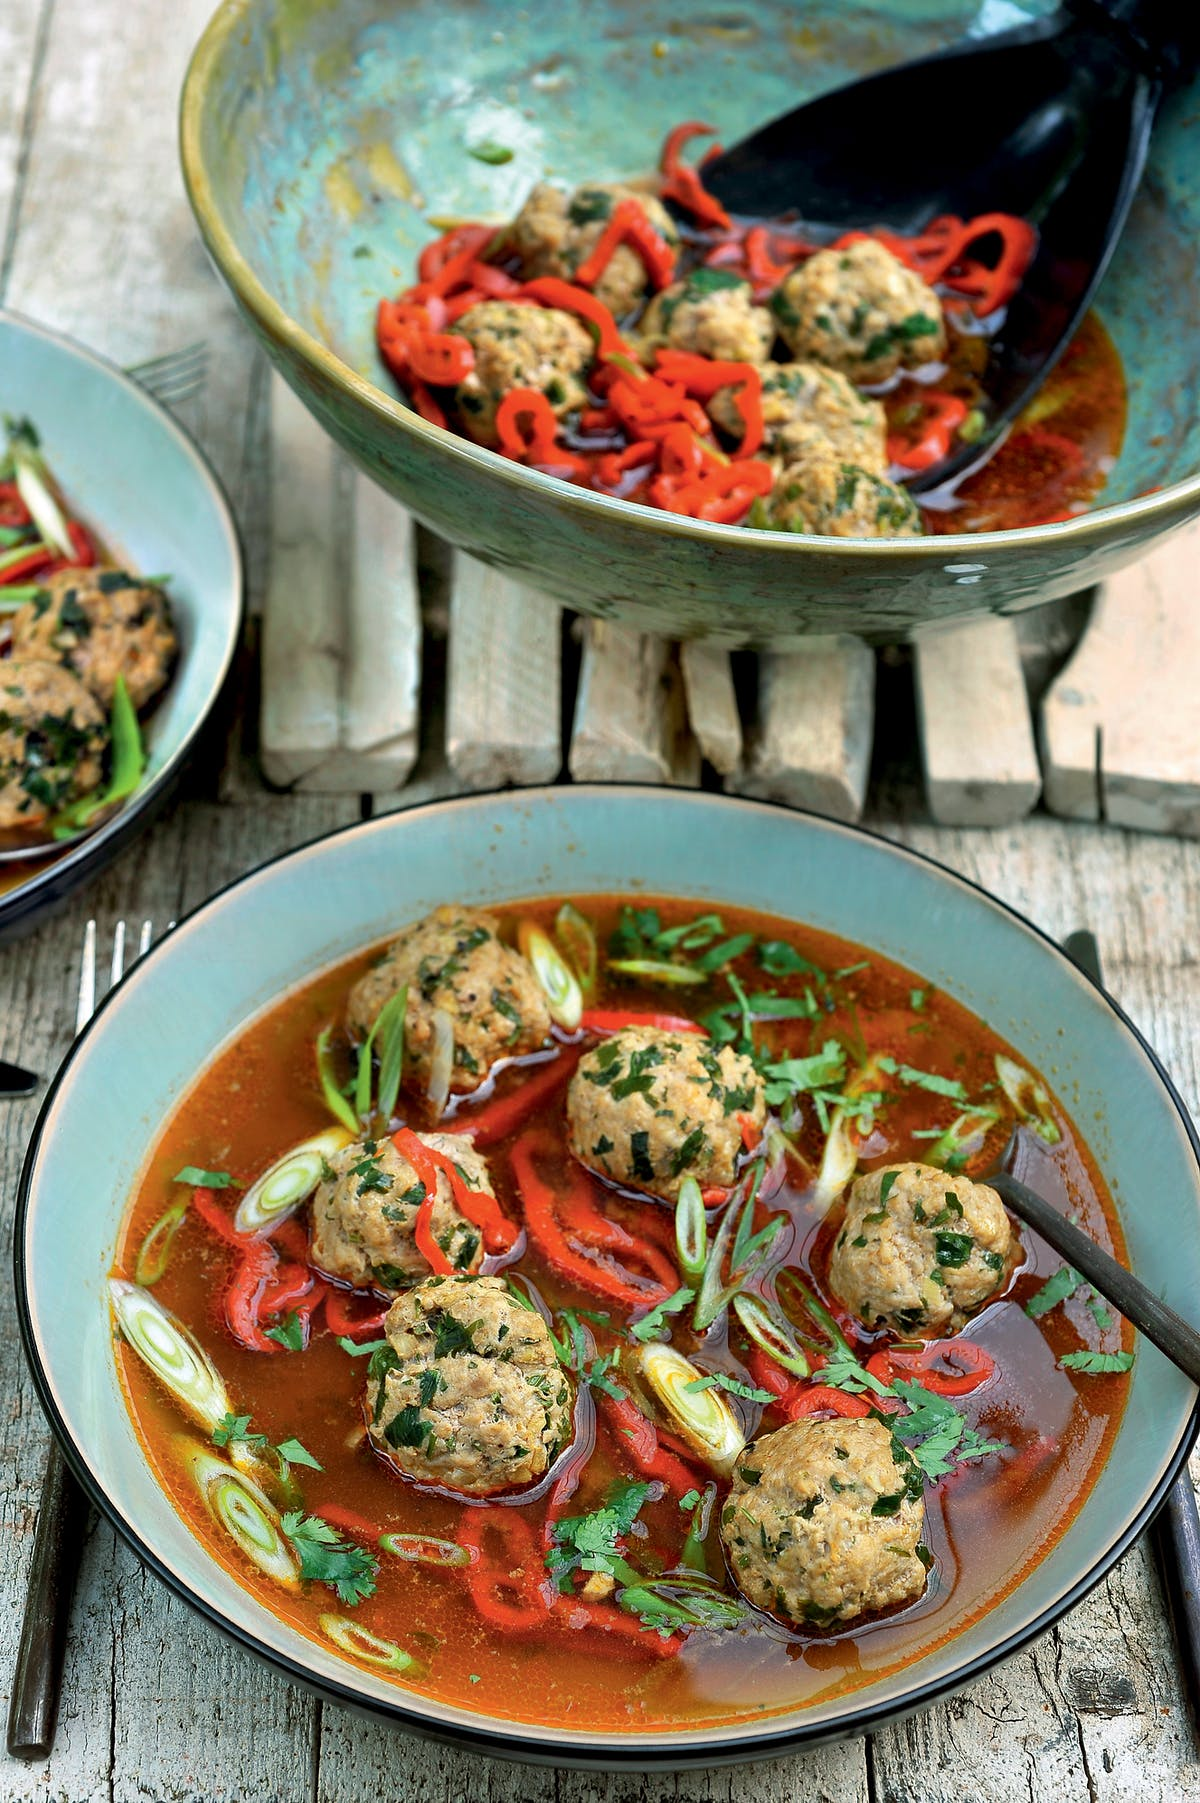 Meatballs in ginger-soy broth